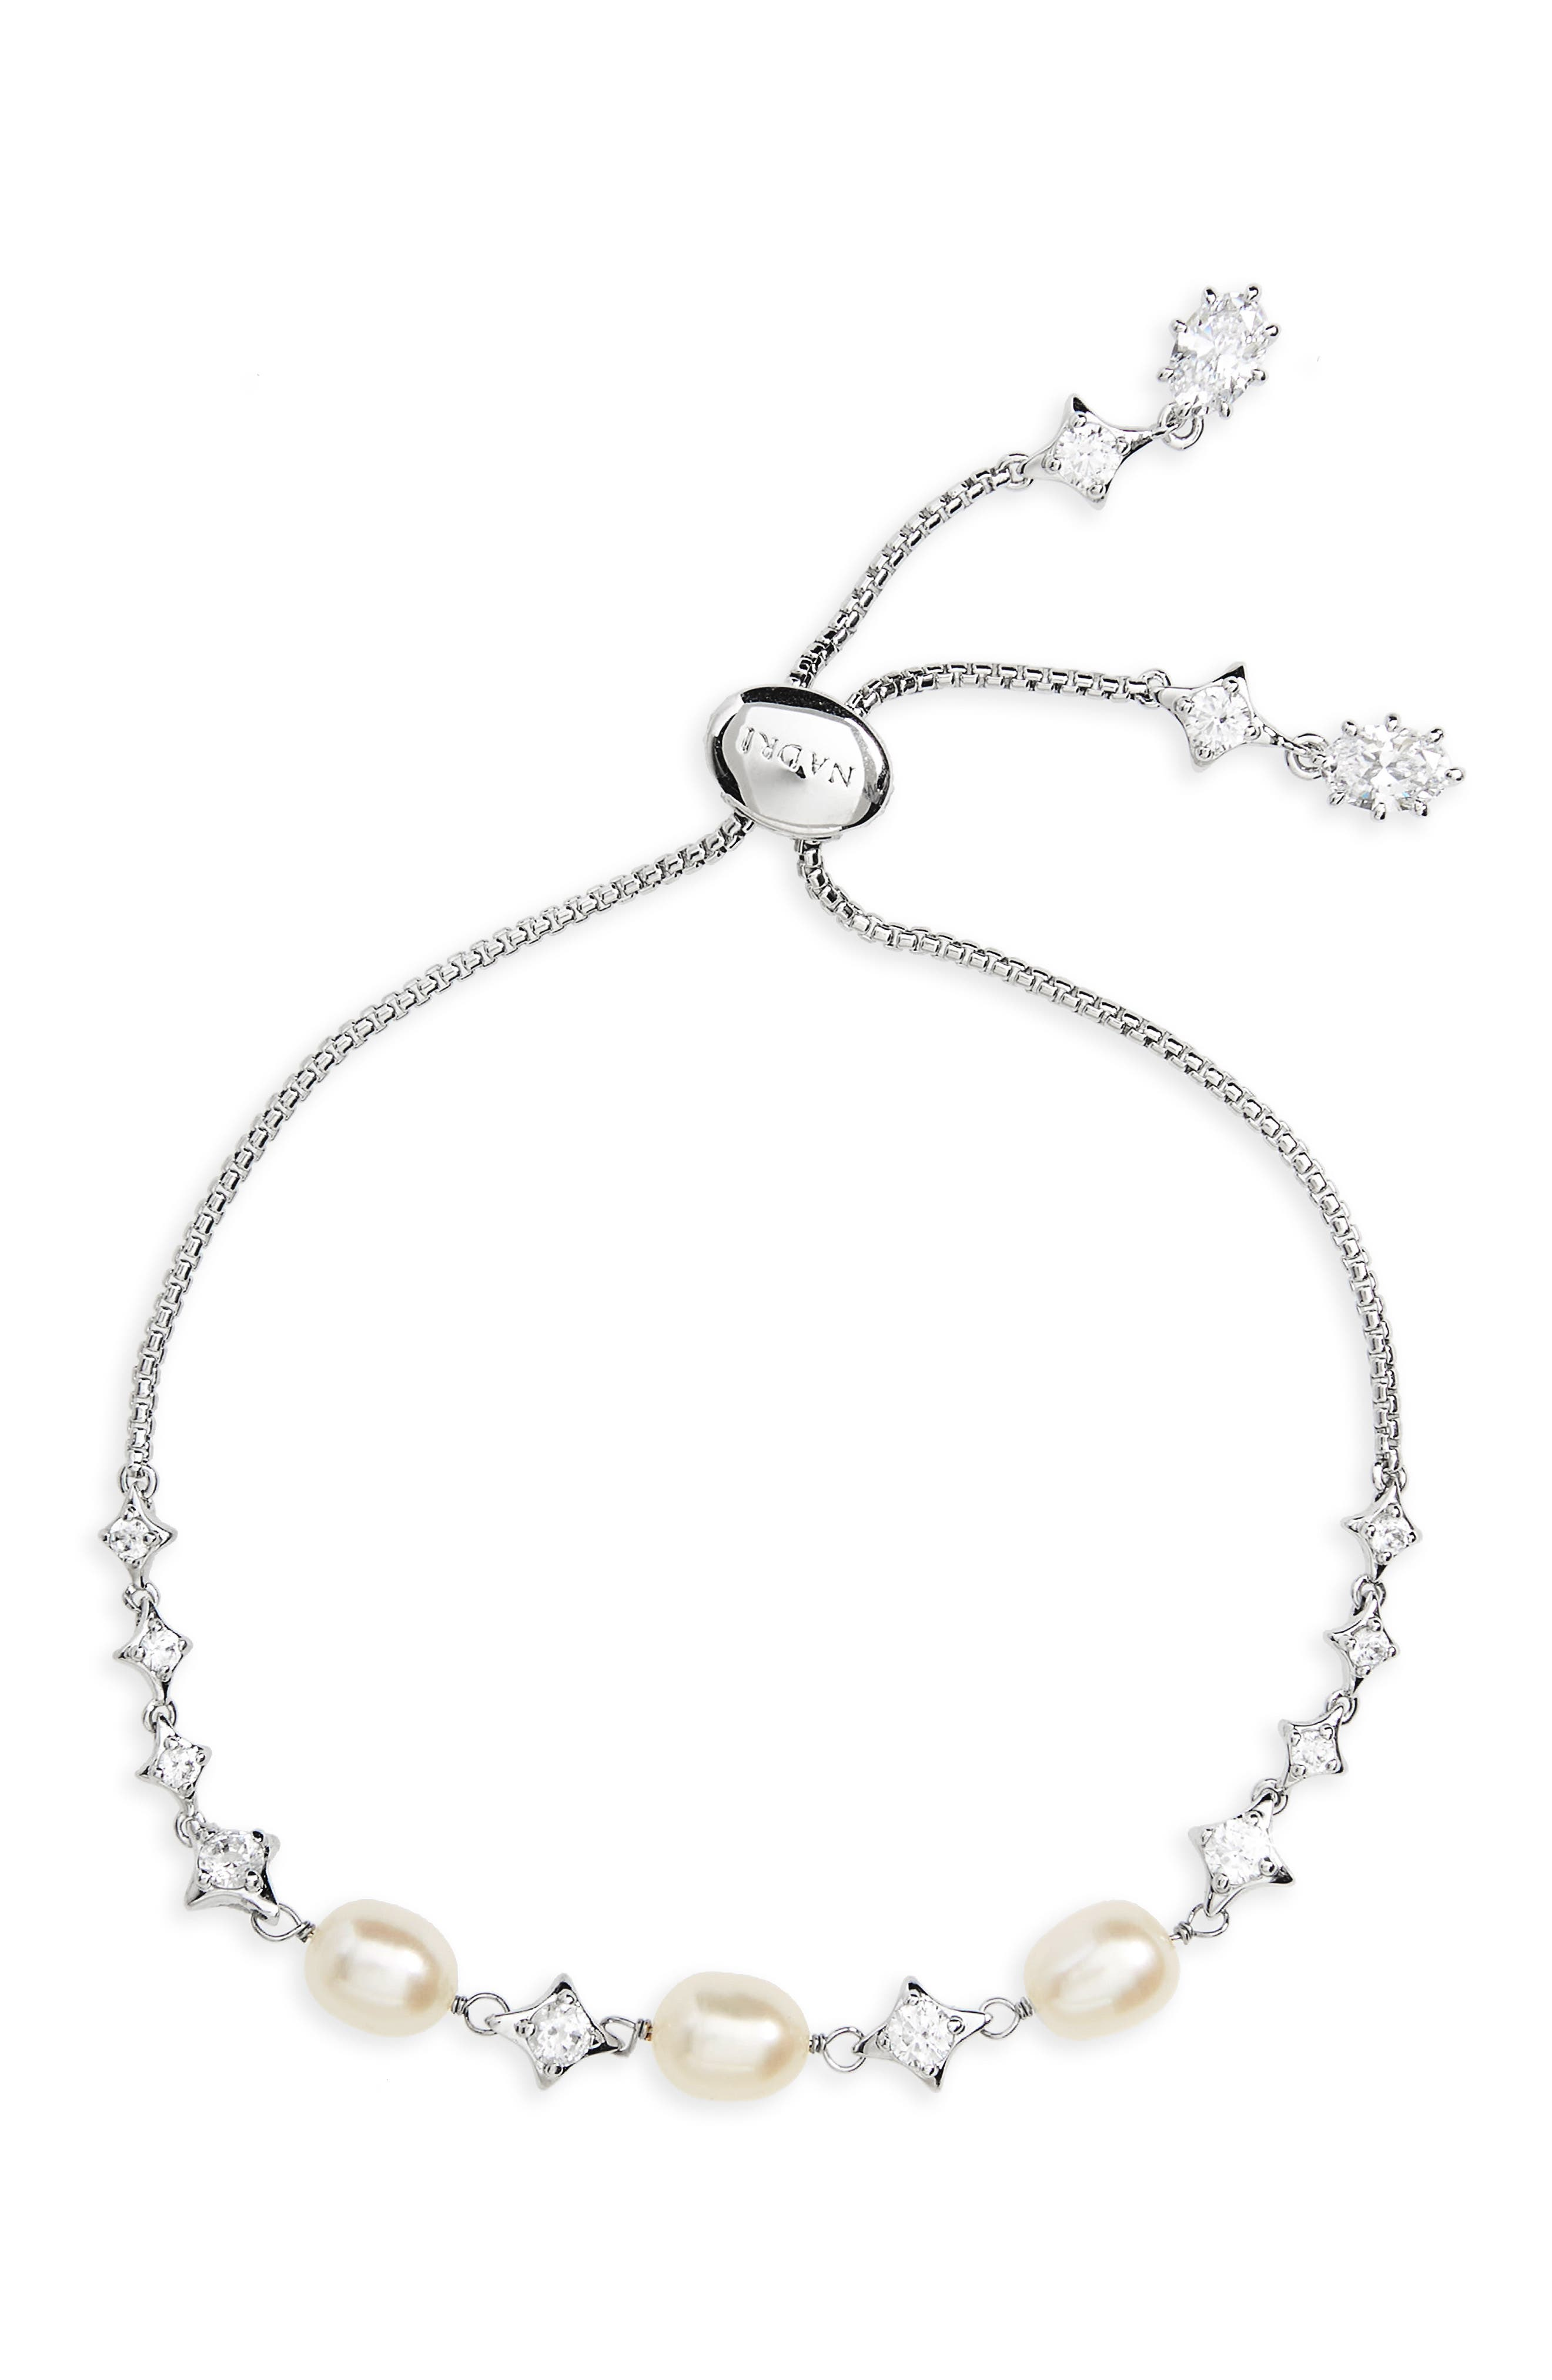 Crystal & Pearl Adjustable Bracelet,                         Main,                         color, Silver/ White Pearl